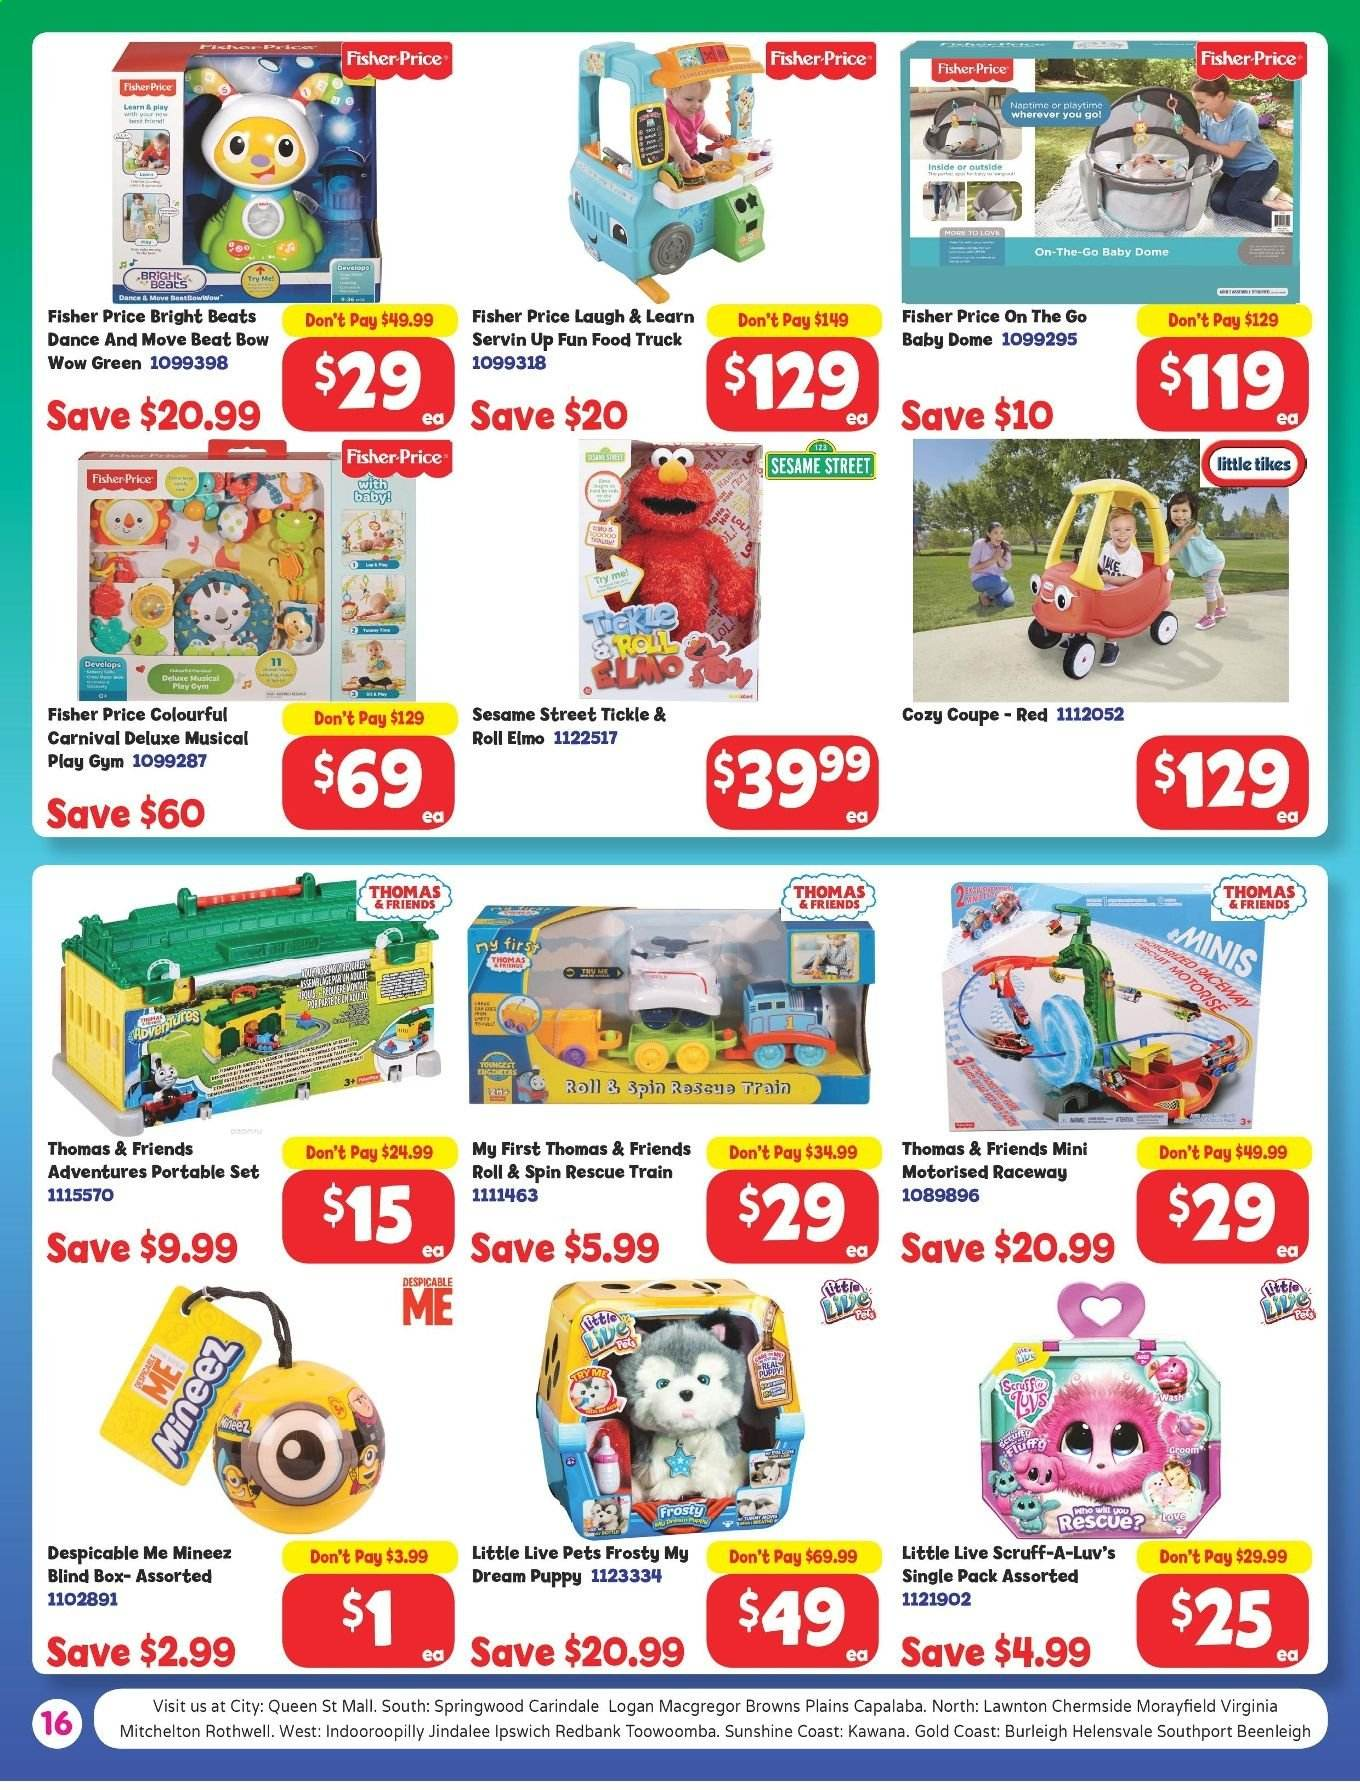 Mr Toys catalogue and weekly specials 5 5 2019 - 28 6 2019 | Au